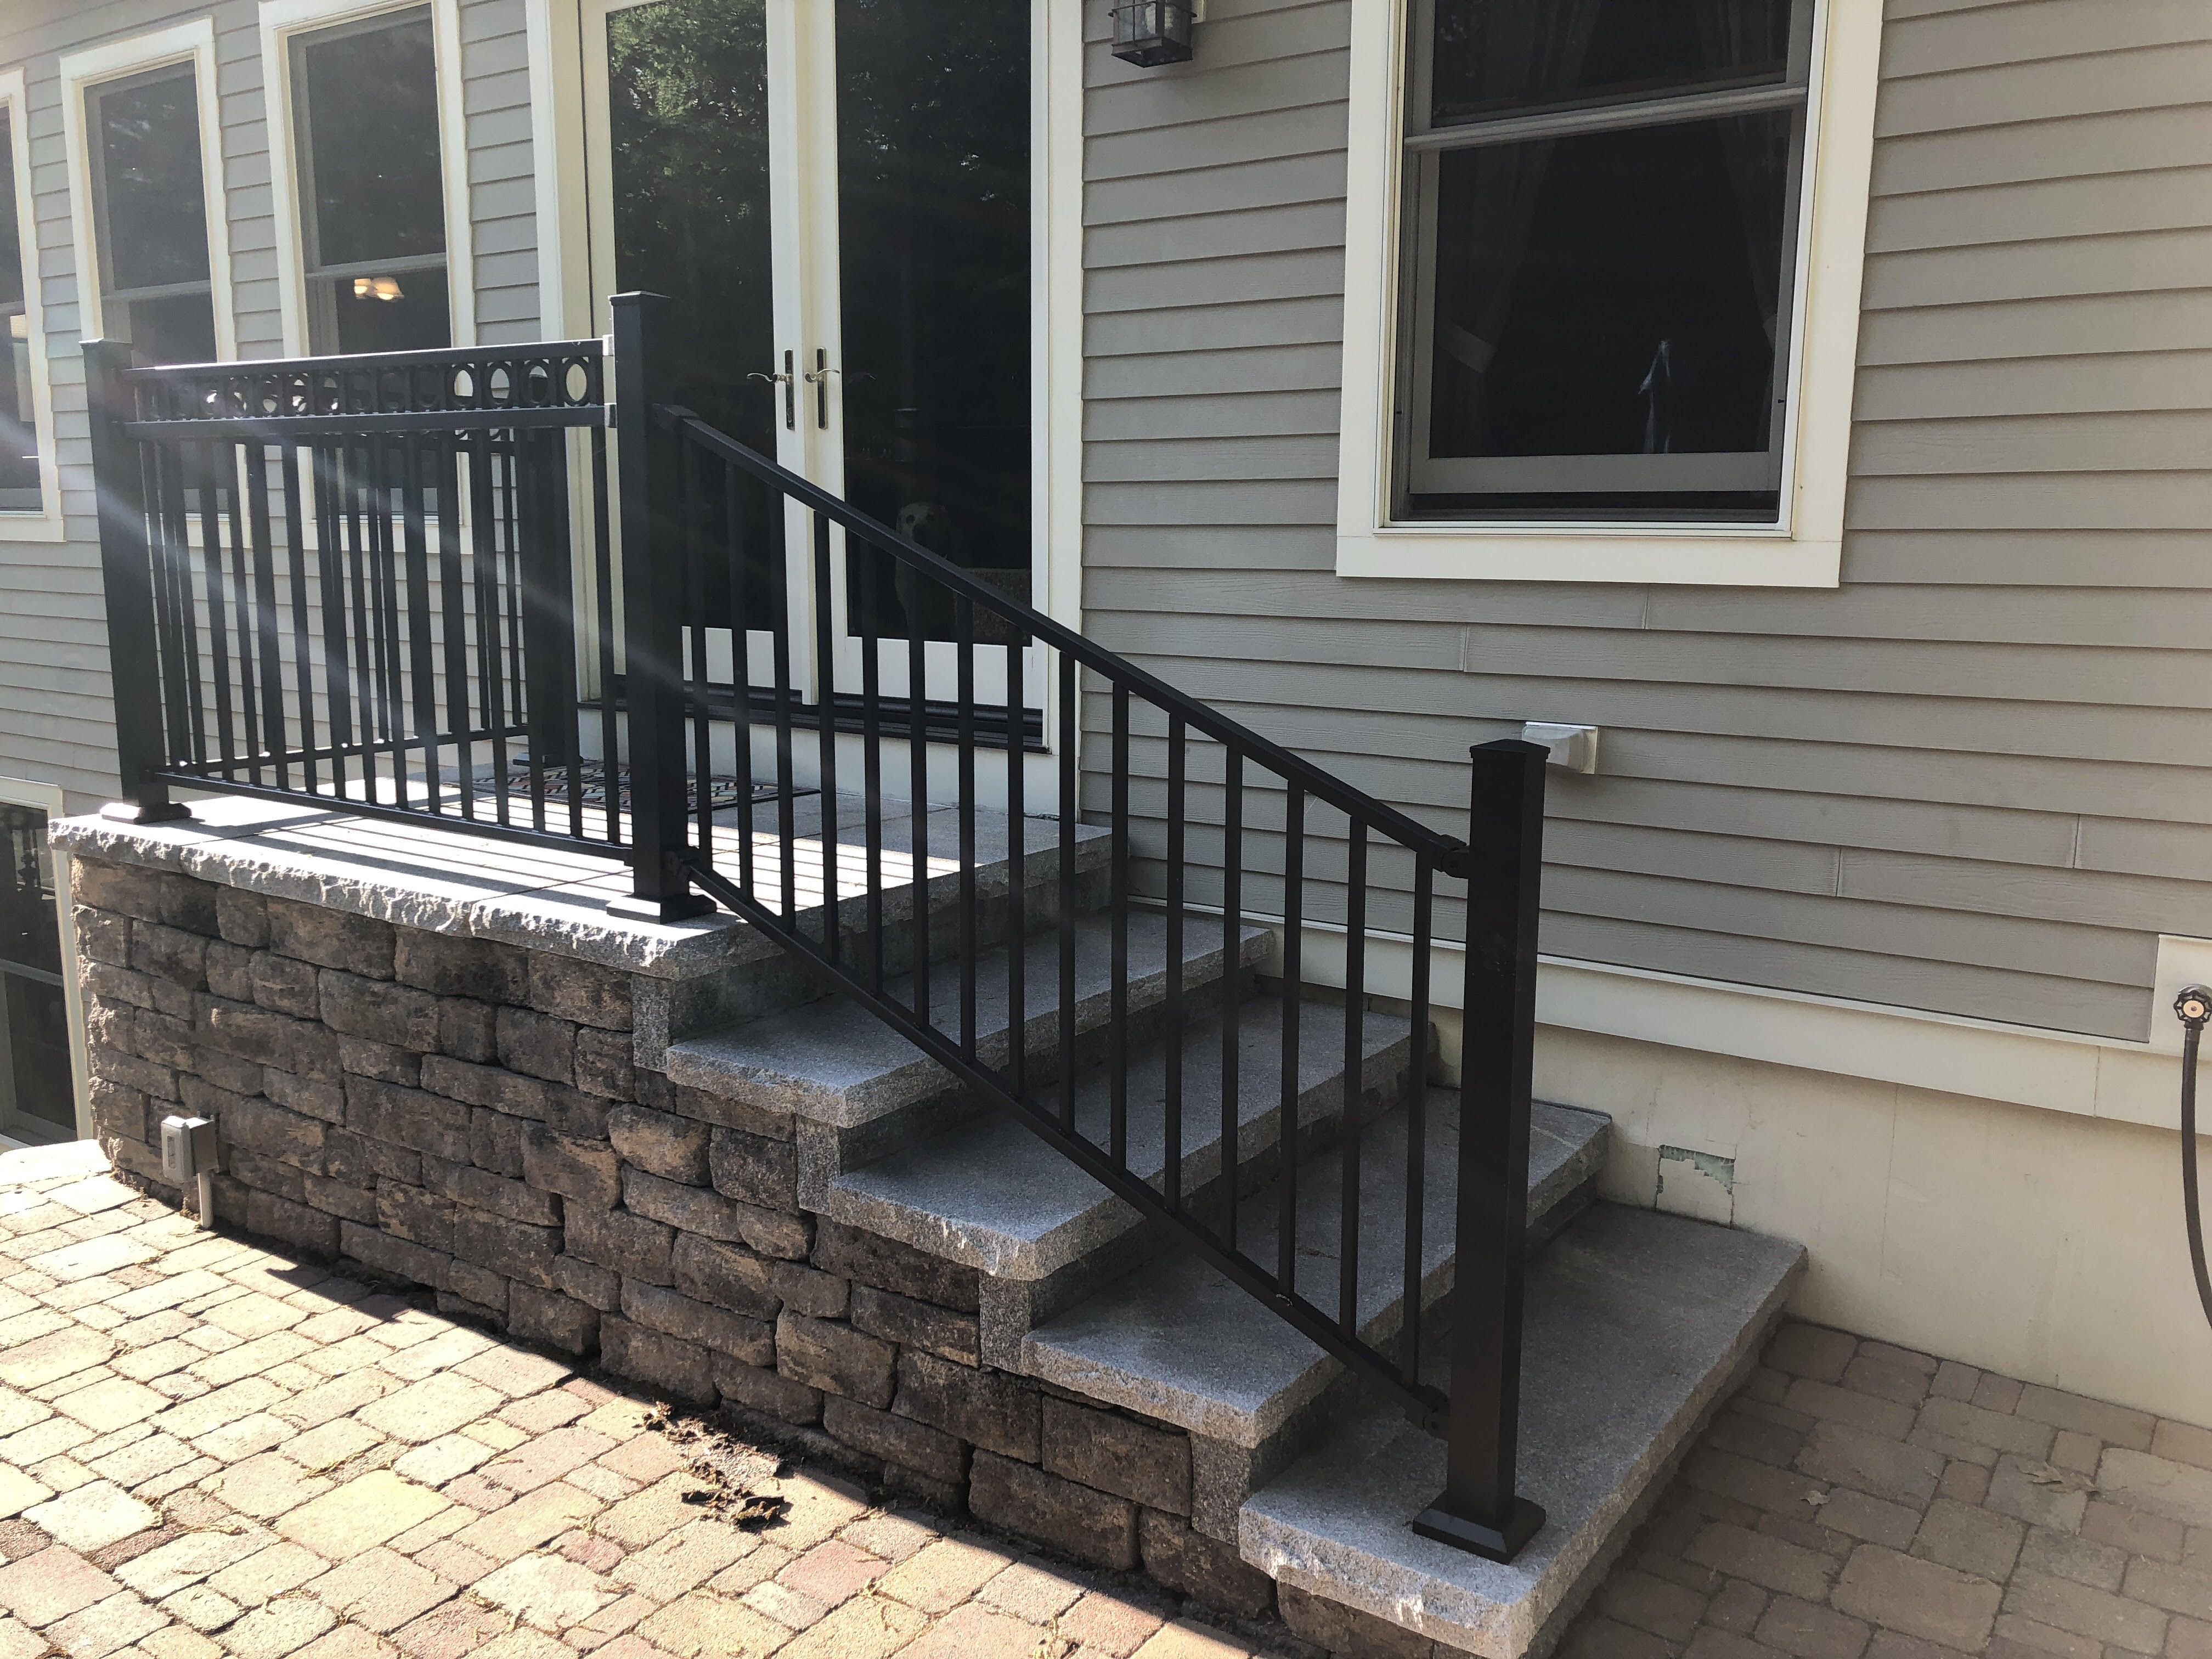 Fortress Al13 Pro Panel Railing System Outdoor Stair Railing | Outdoor Railings For Steps | Exterior | Outside | Residential | Staircase | Interior